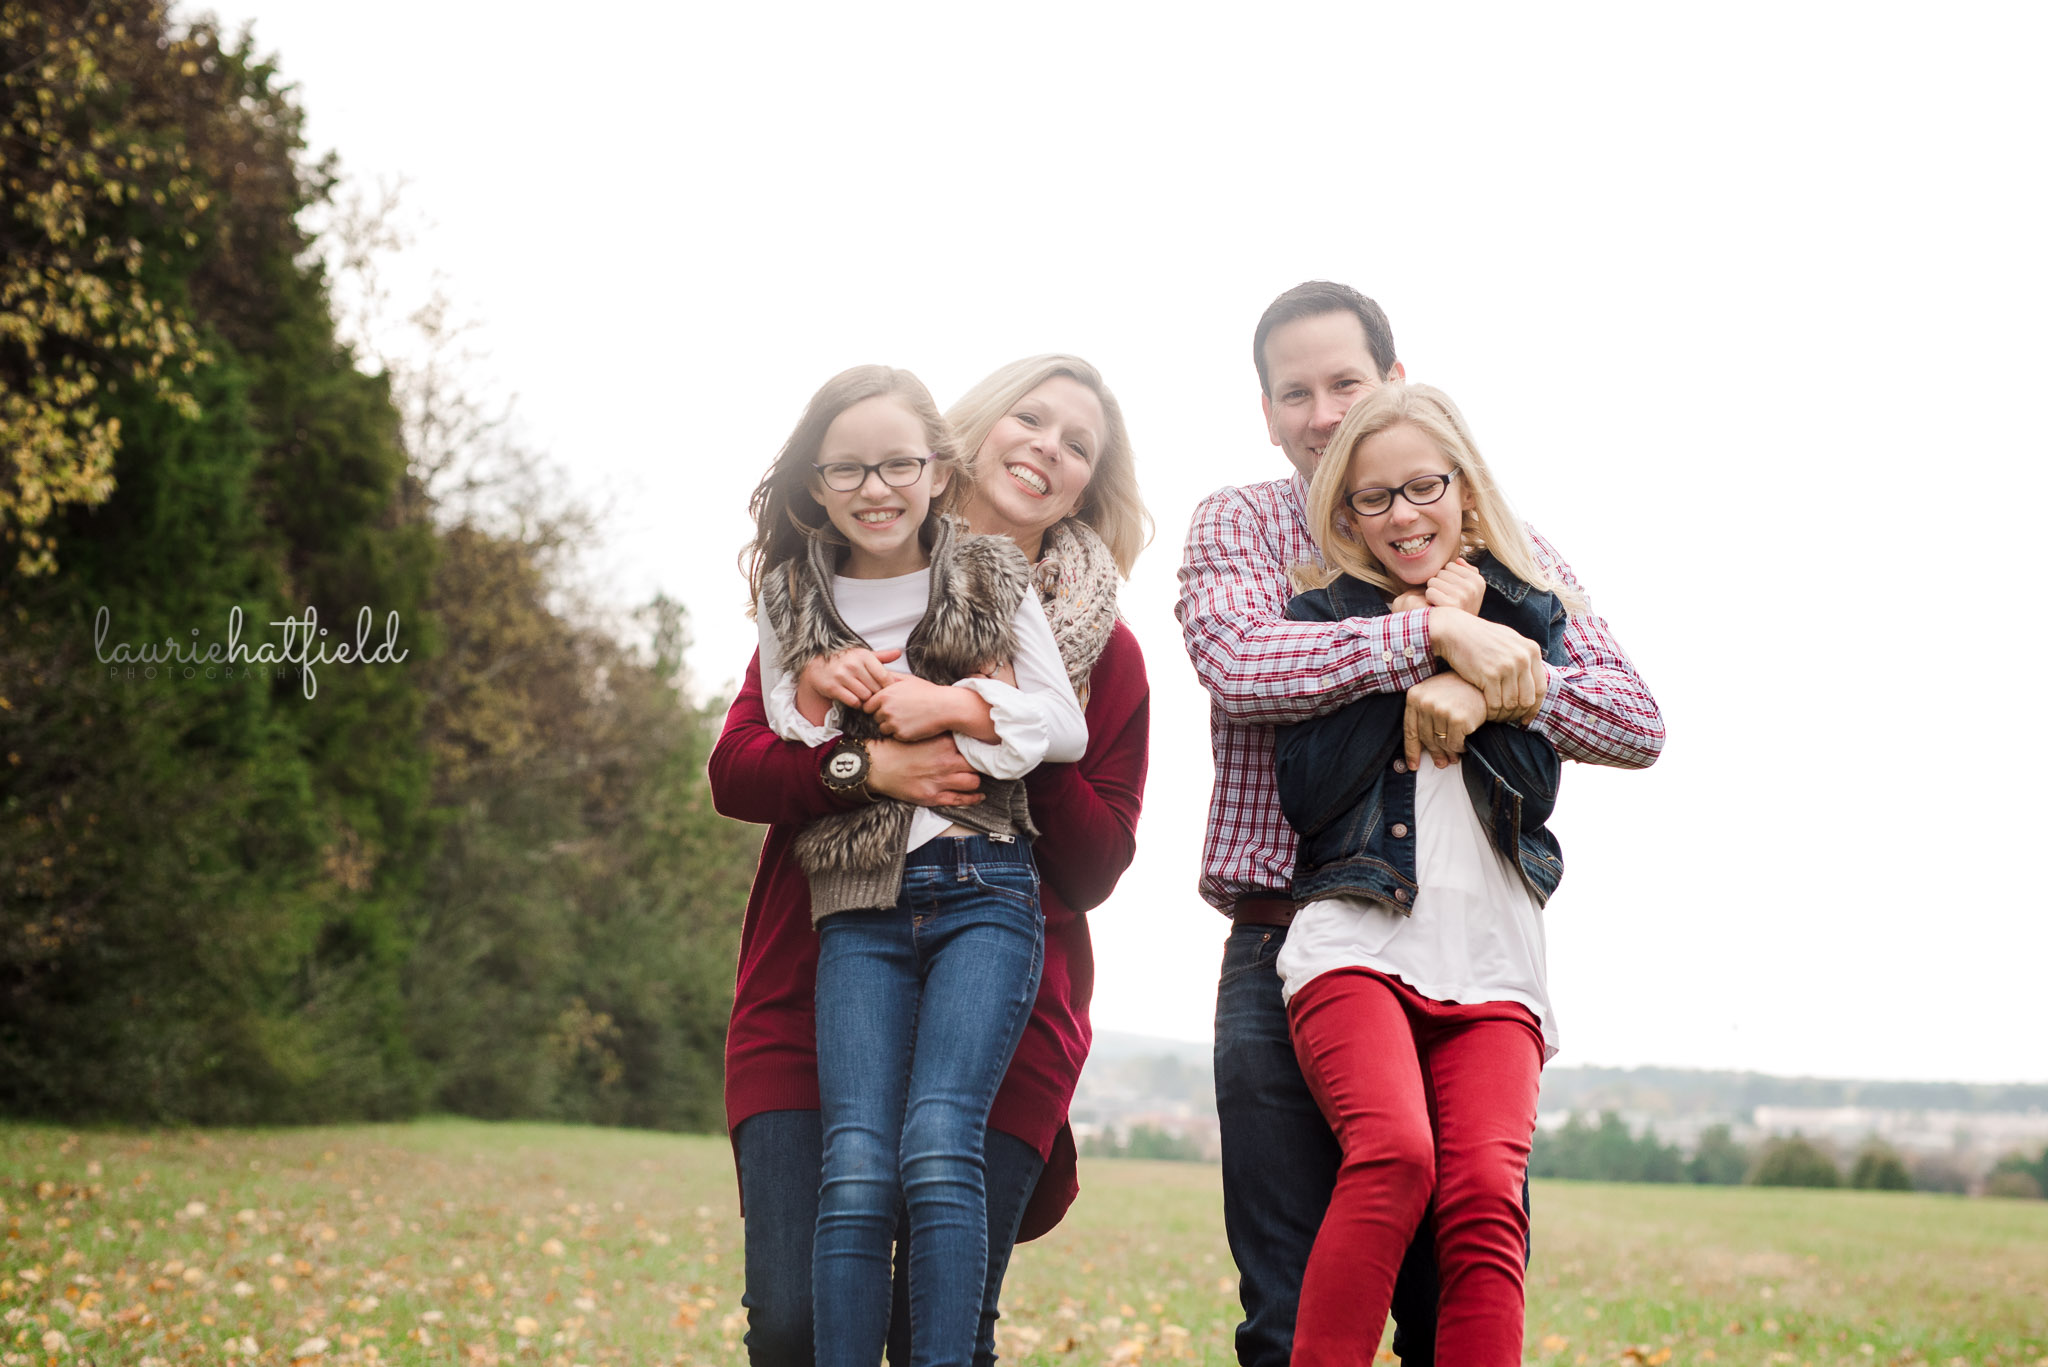 mom and dad carrying daughters | Mobile AL photo session